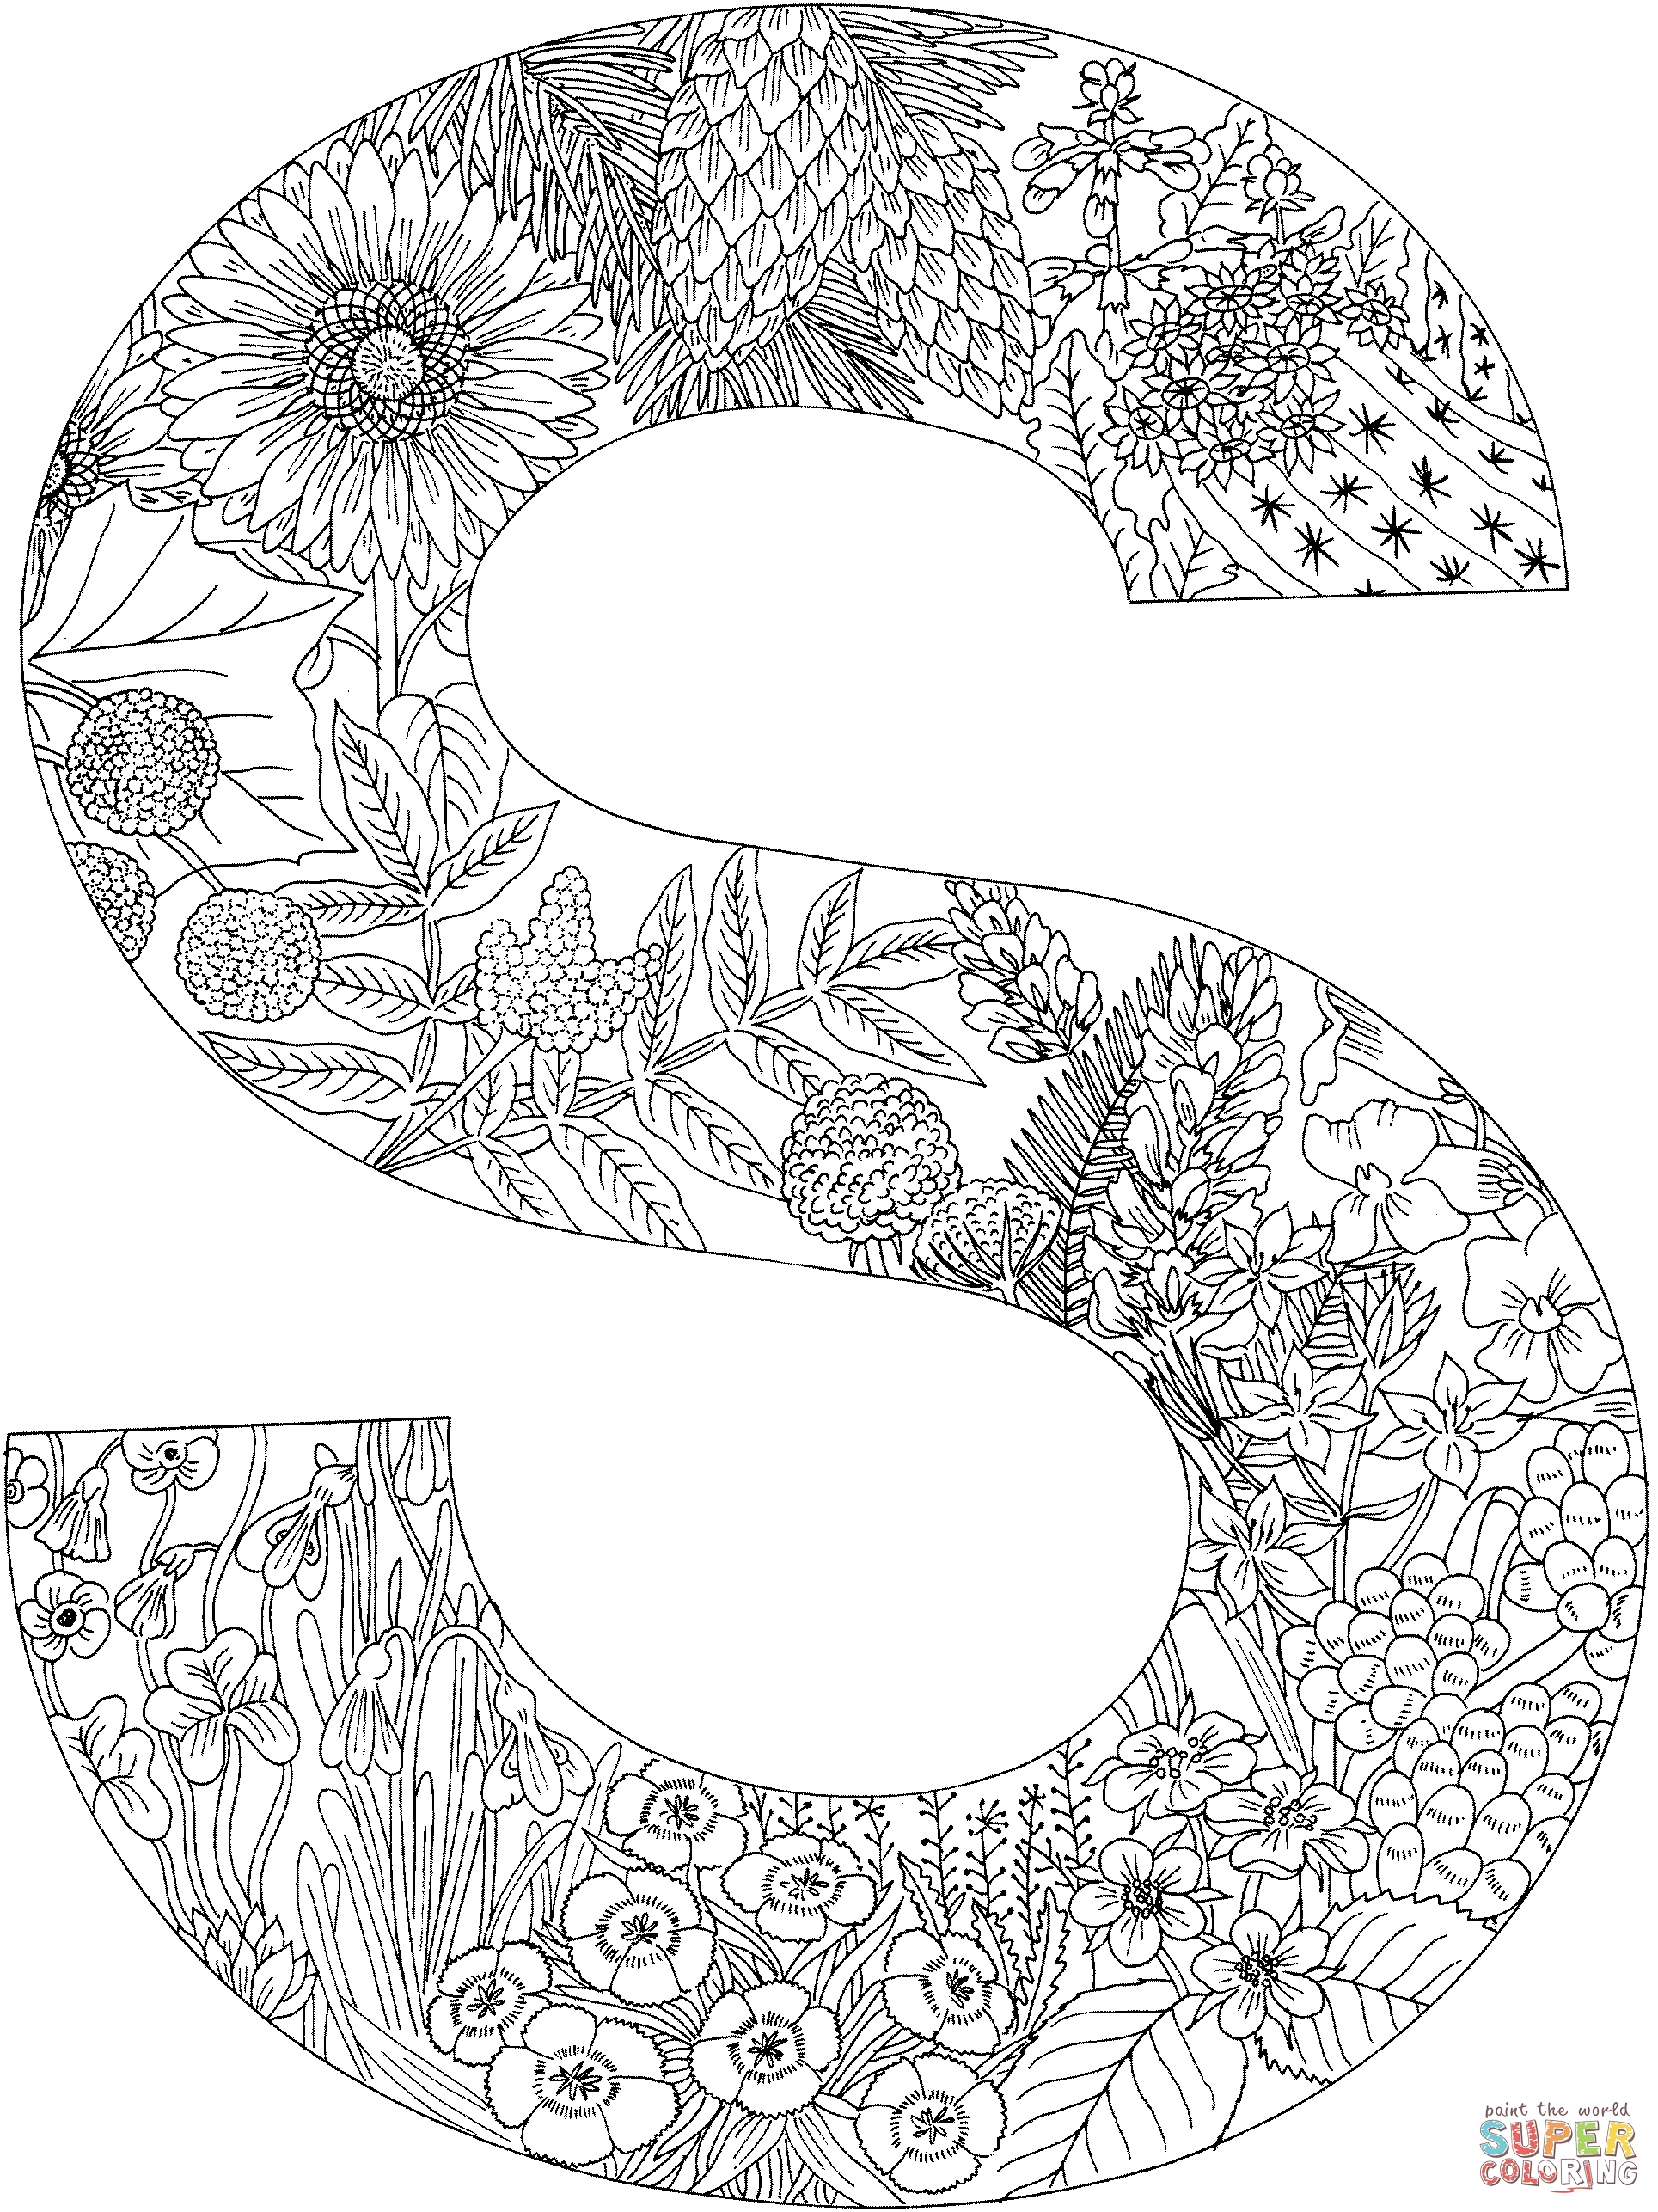 s coloring page - coloring pages letter s